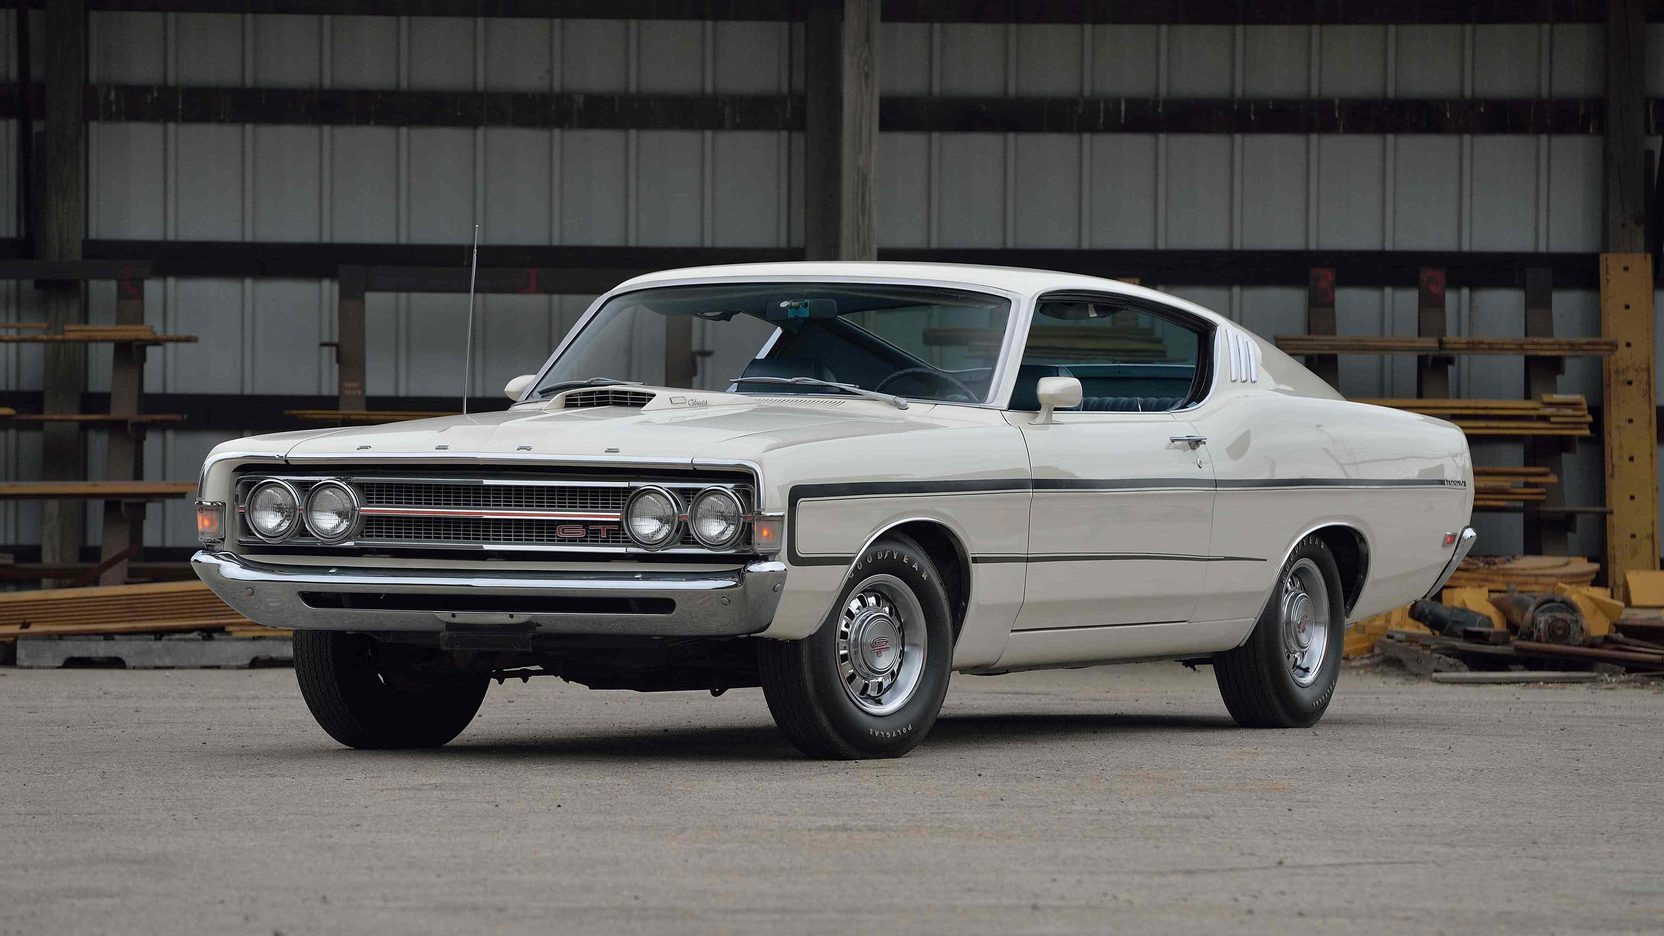 1969 Ford Torino GT front 3/4